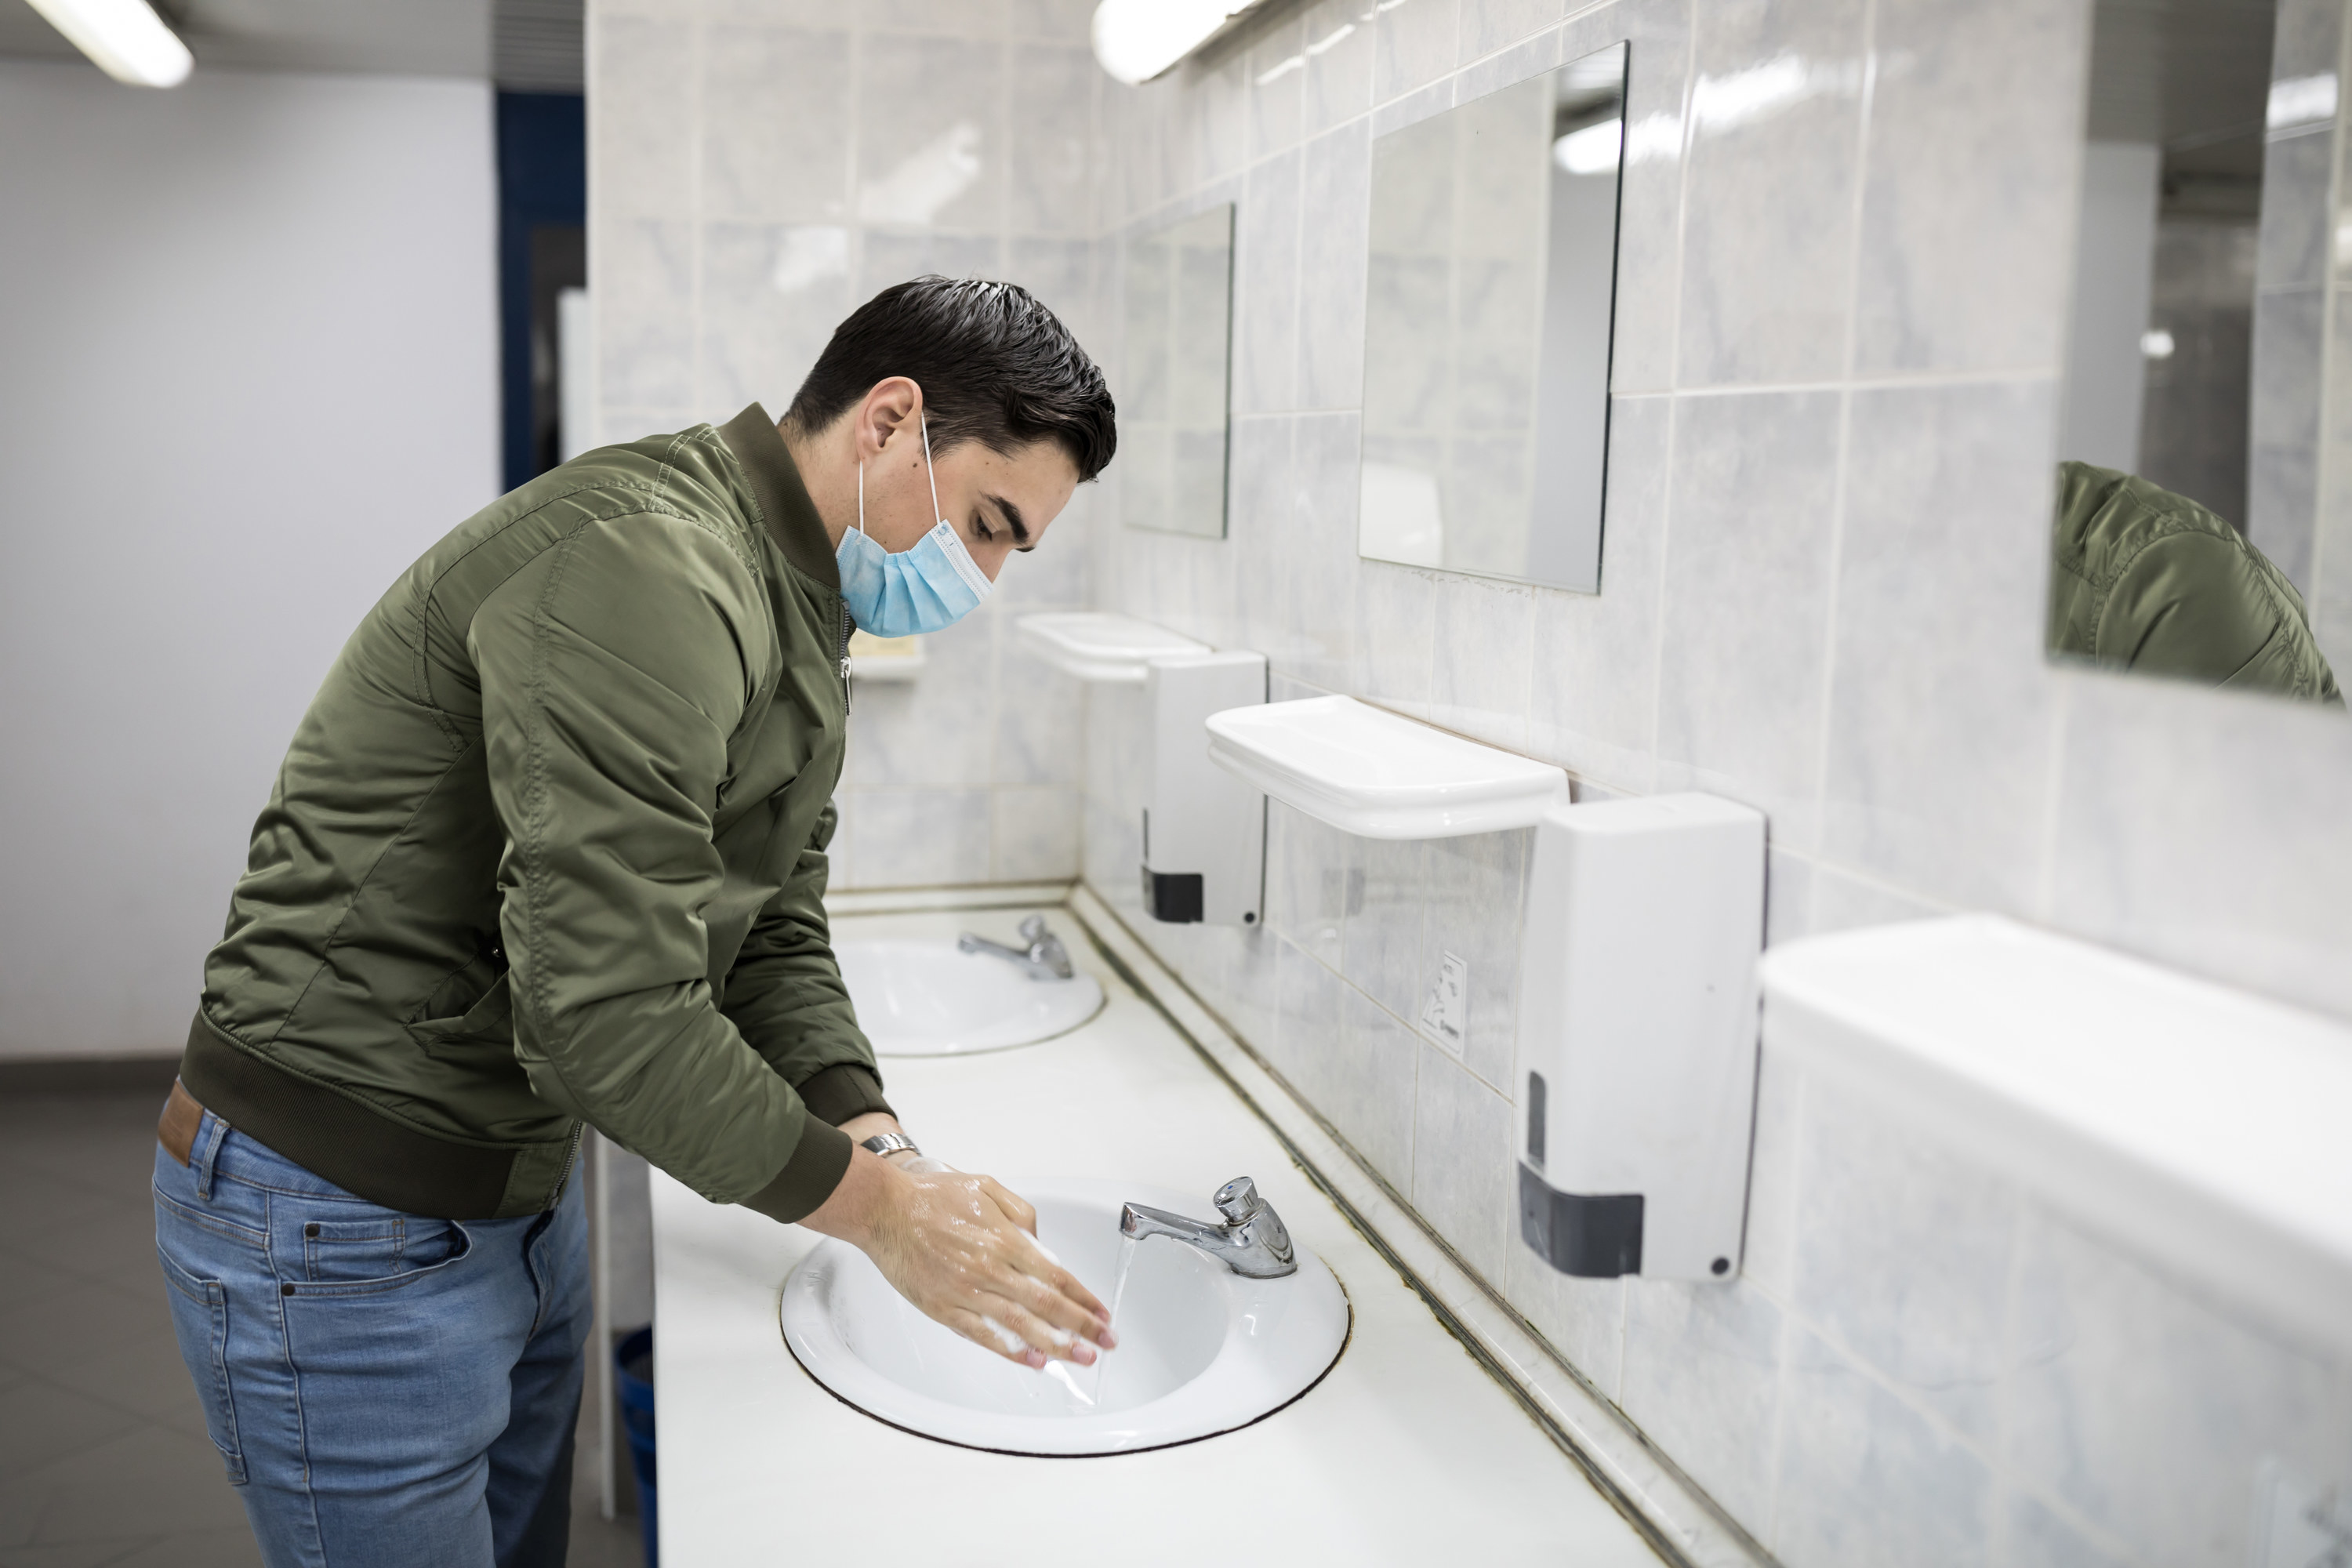 A man washing his hands